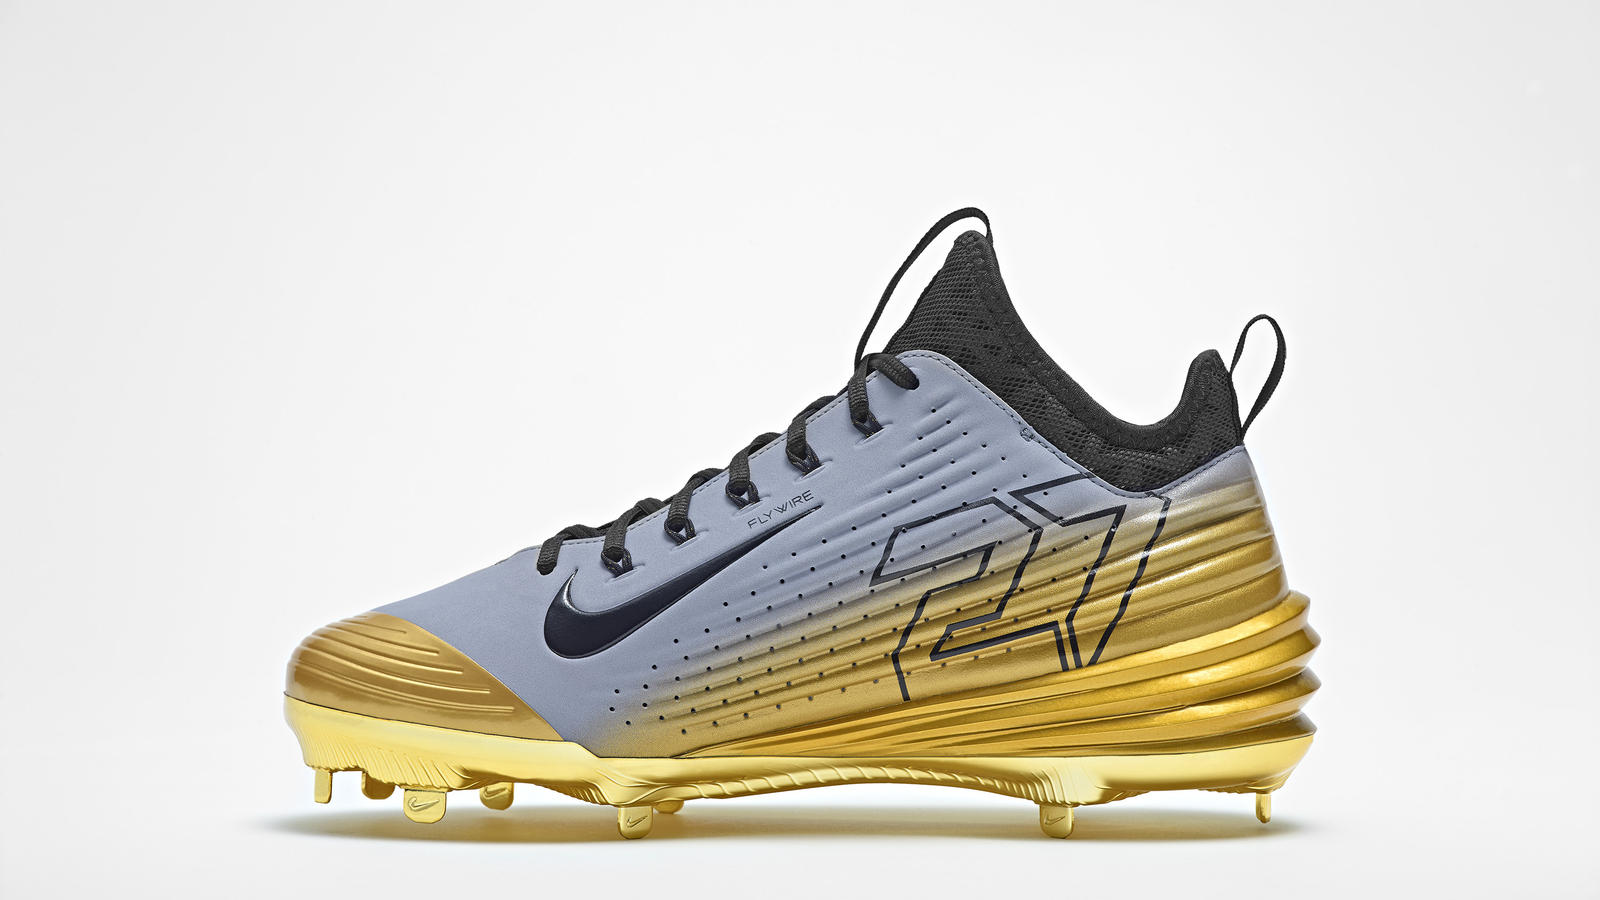 c51dfcbb1315 Nike Lunar Vapor Trout Pack Honors Mike Trout s First MVP Award ...